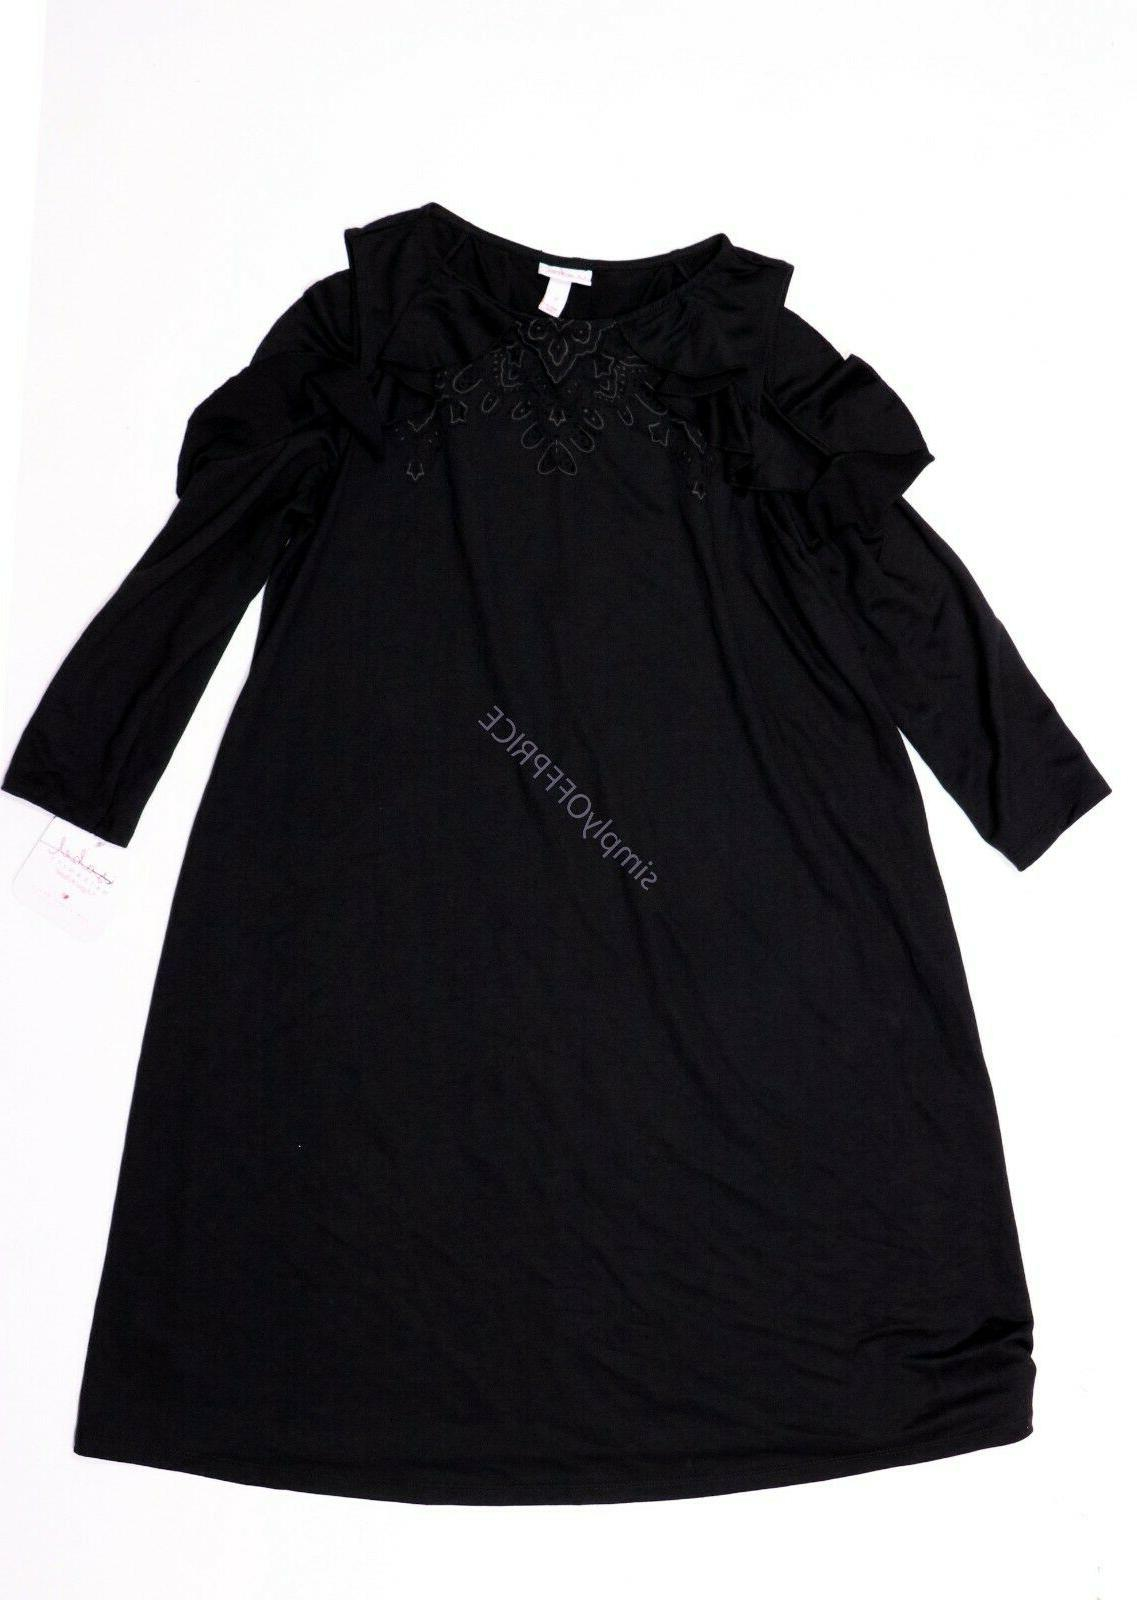 New Clothes Solid Black Dress Size Small